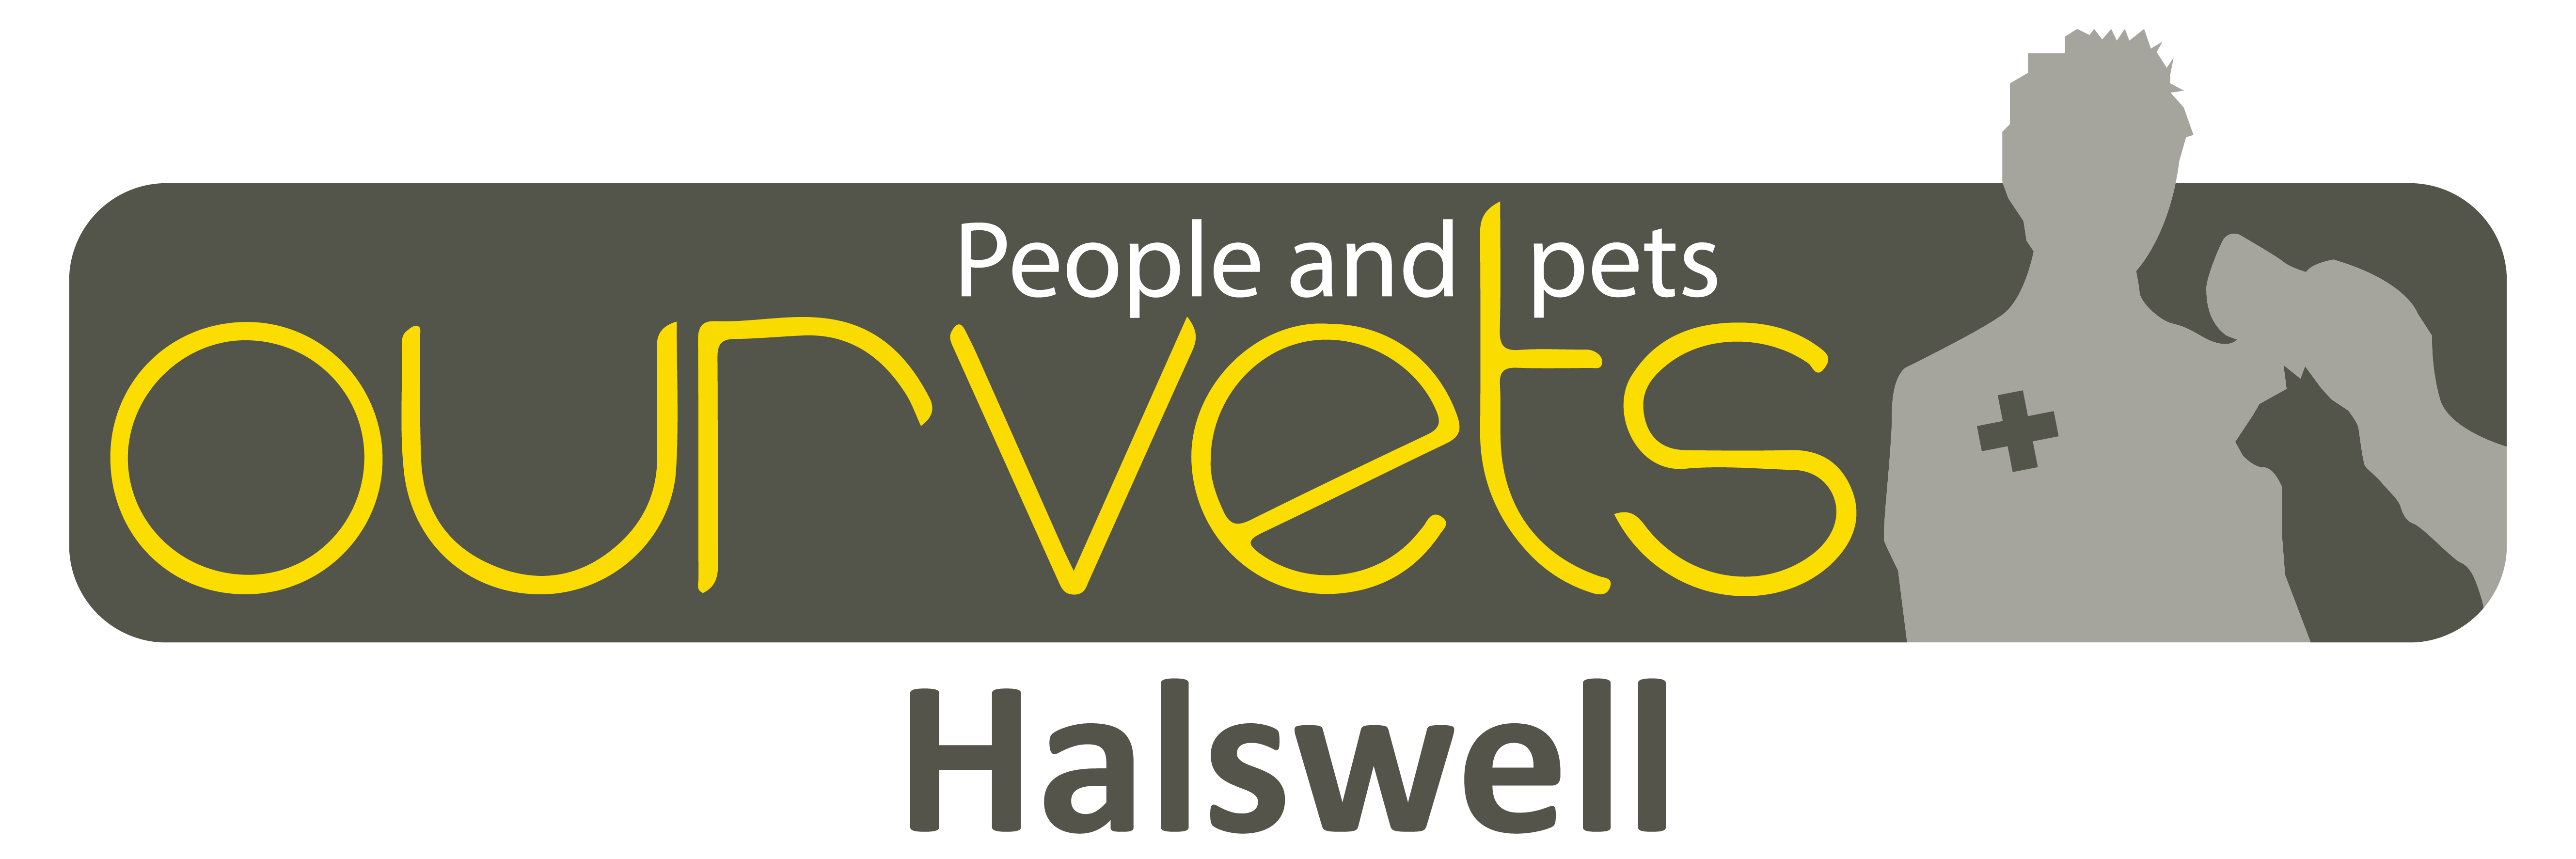 Ourvets Halswell NZ logo